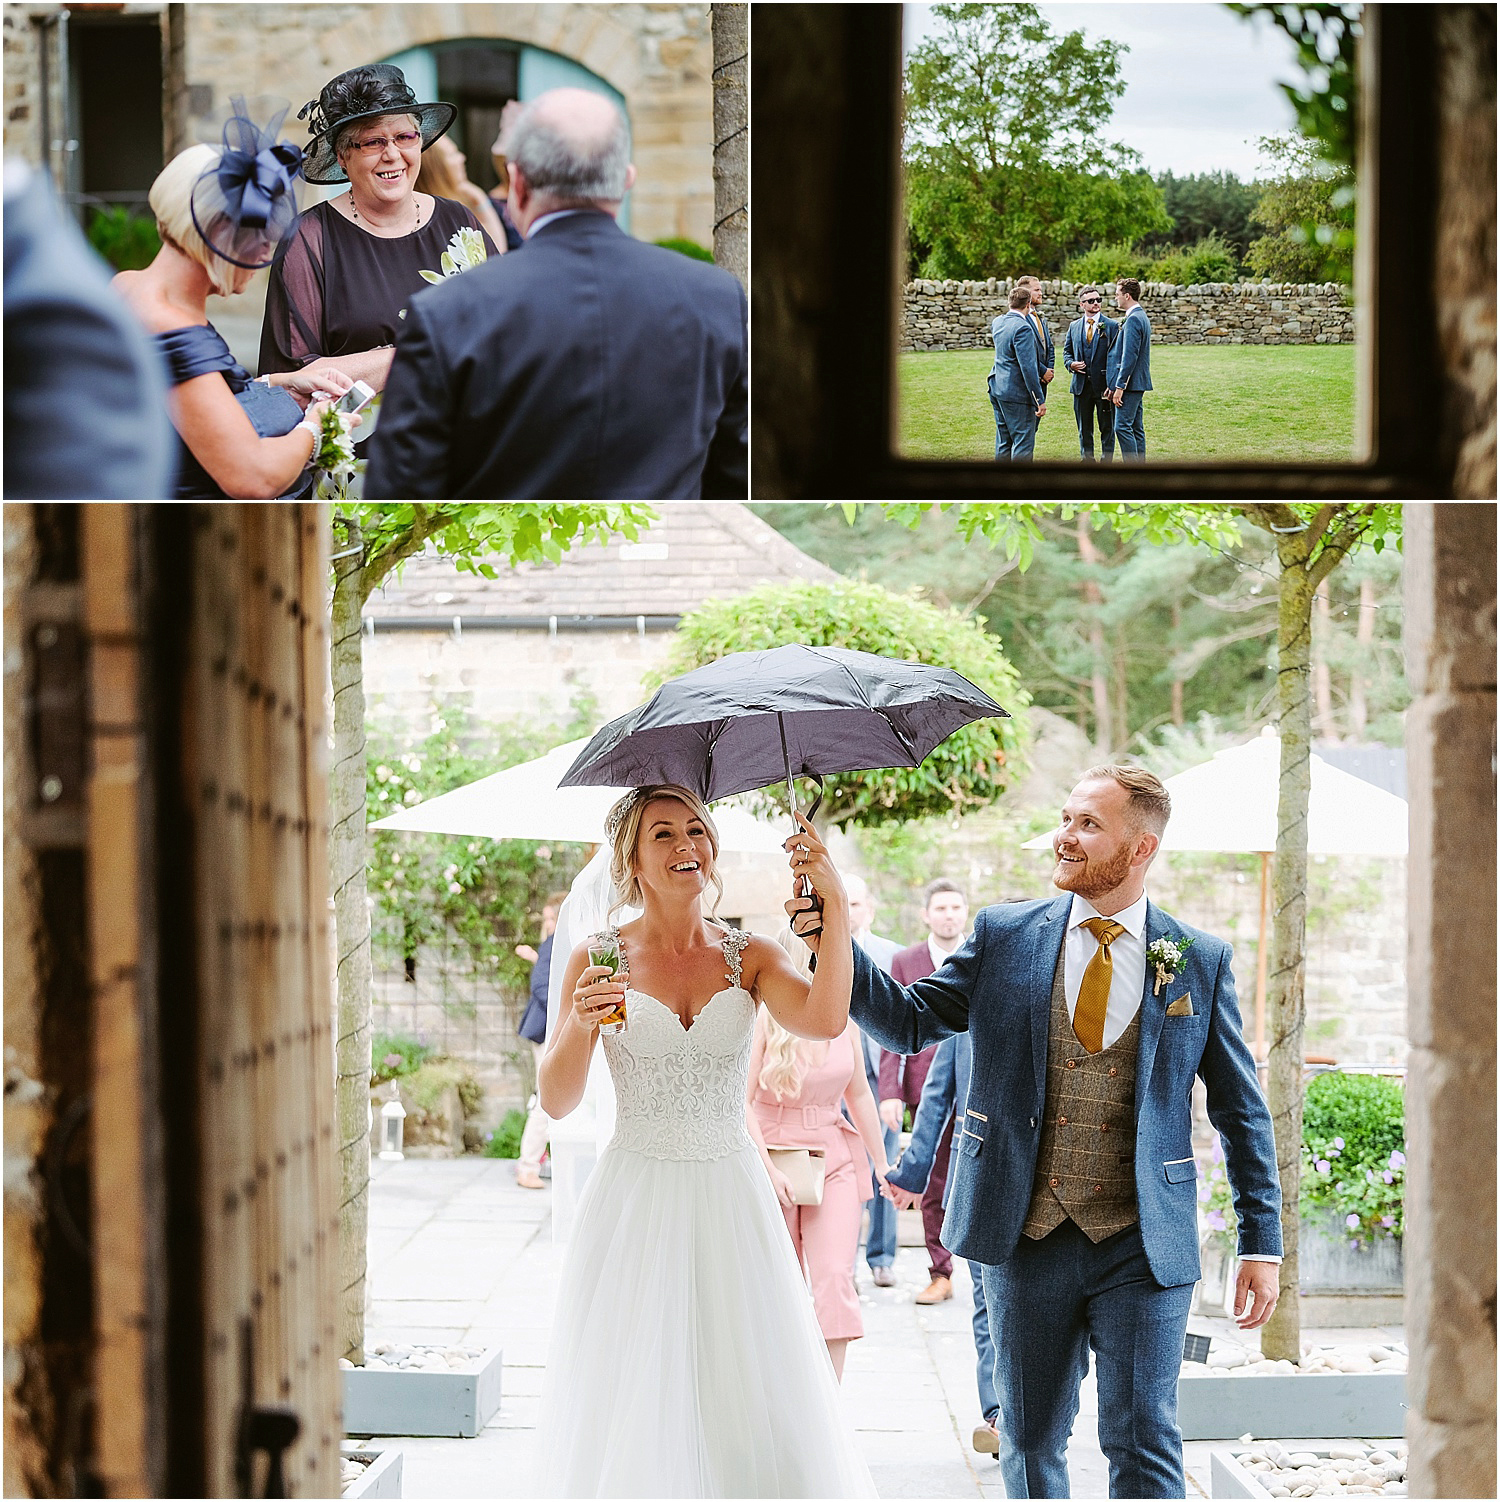 Wedding at Healey Barn - wedding photography by www.2tonephotography.co.uk 060.jpg